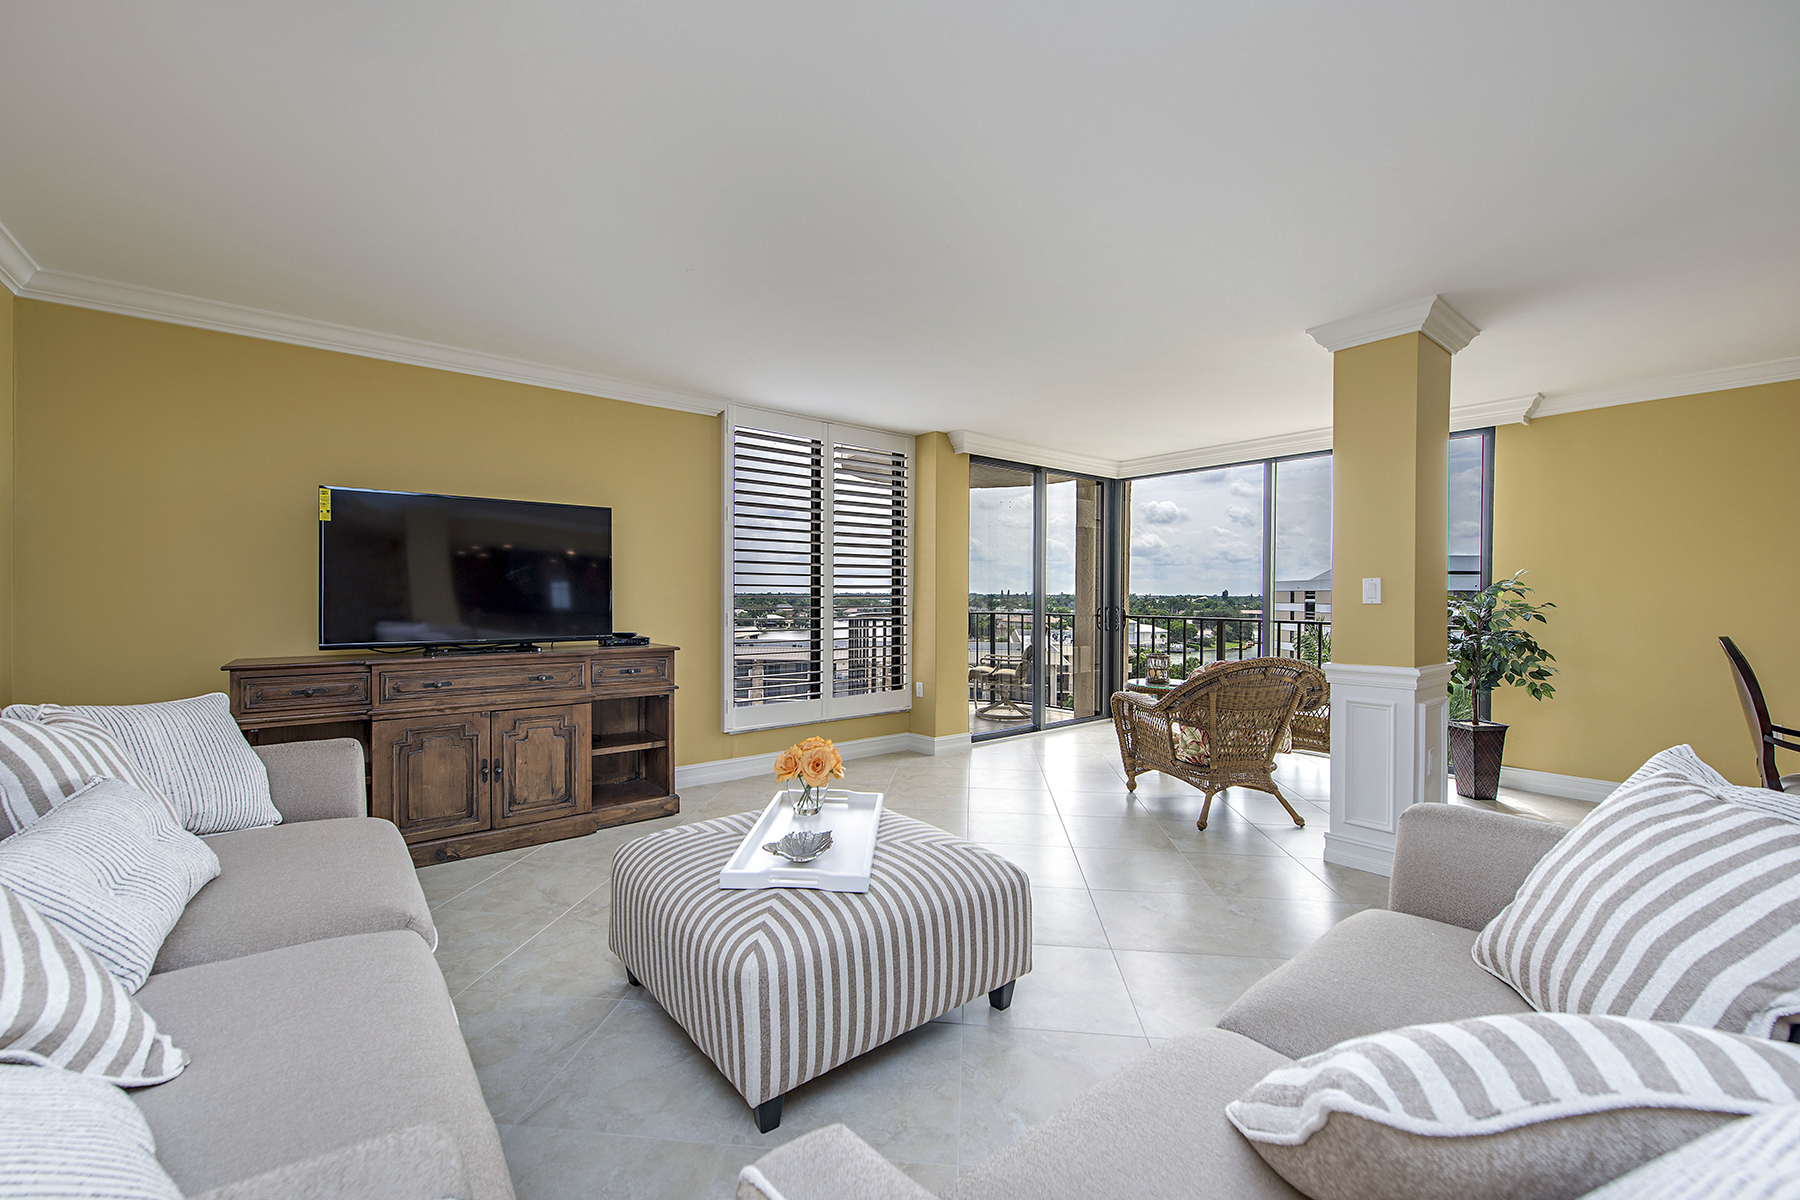 Condominium for Sale at THE MOORINGS - LAUSANNE 3215 Gulf Shore Blvd N 601N Naples, Florida 34103 United States